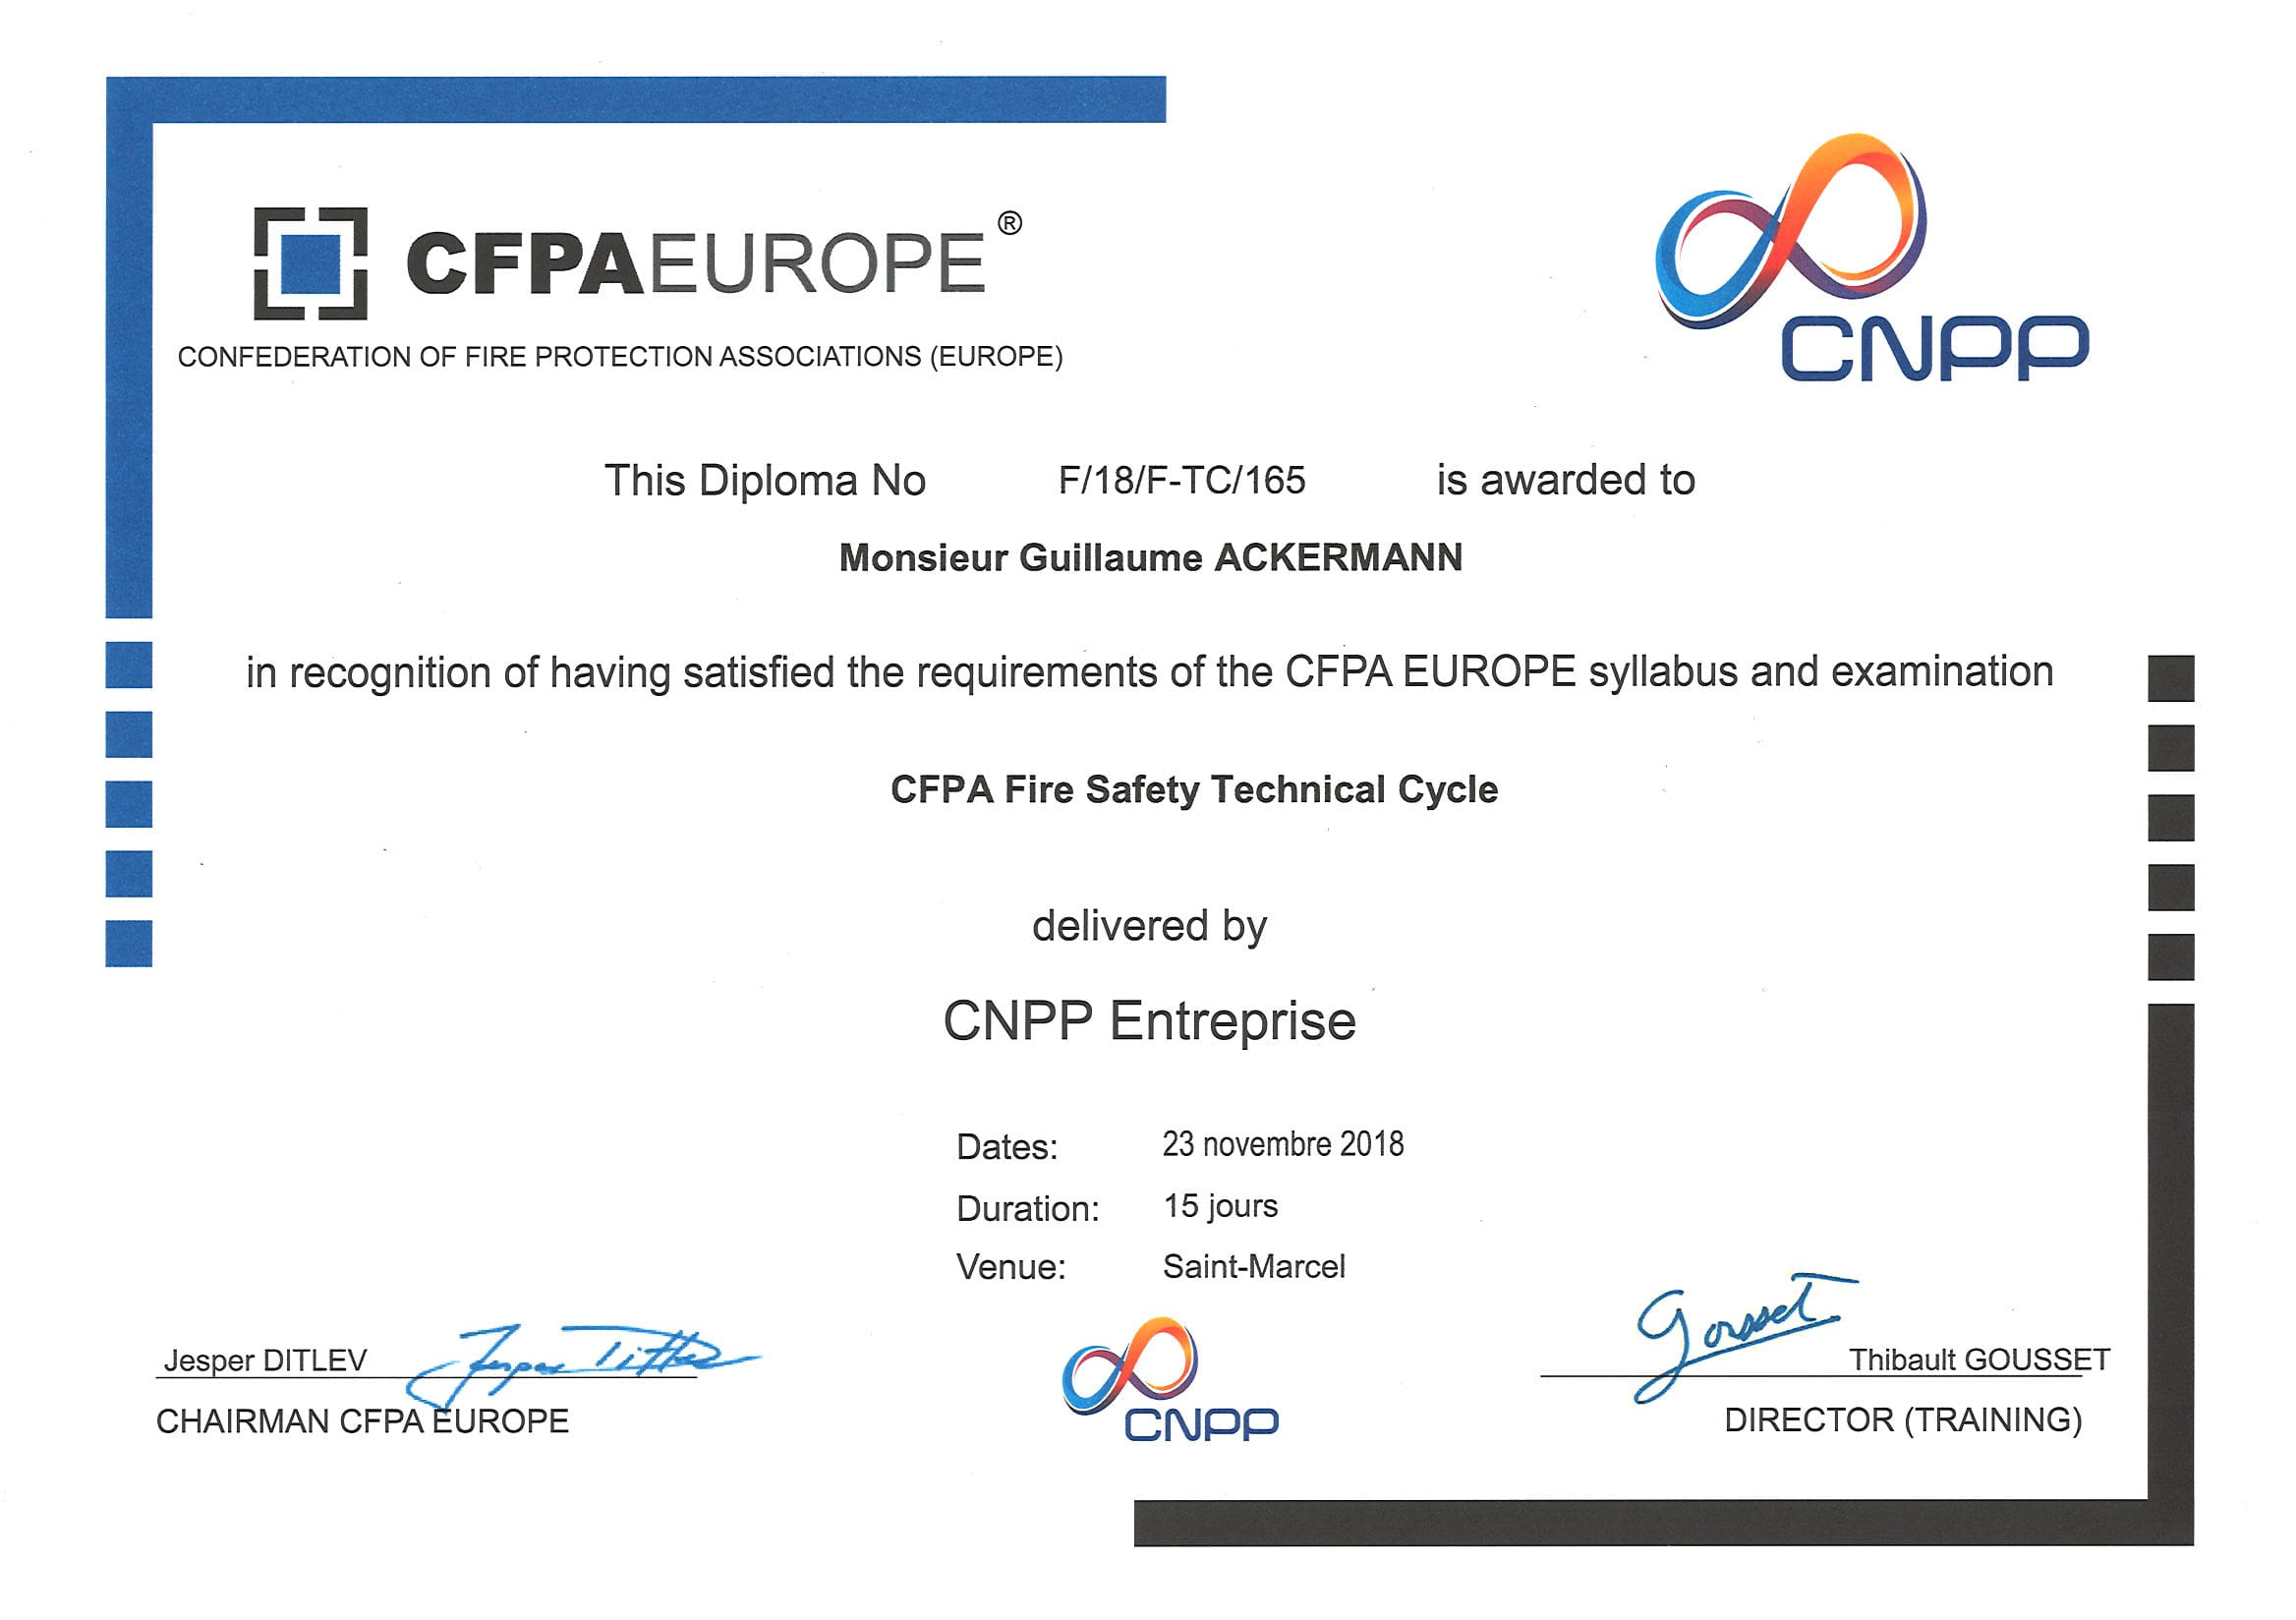 CFPA Fire Safety technical cycle